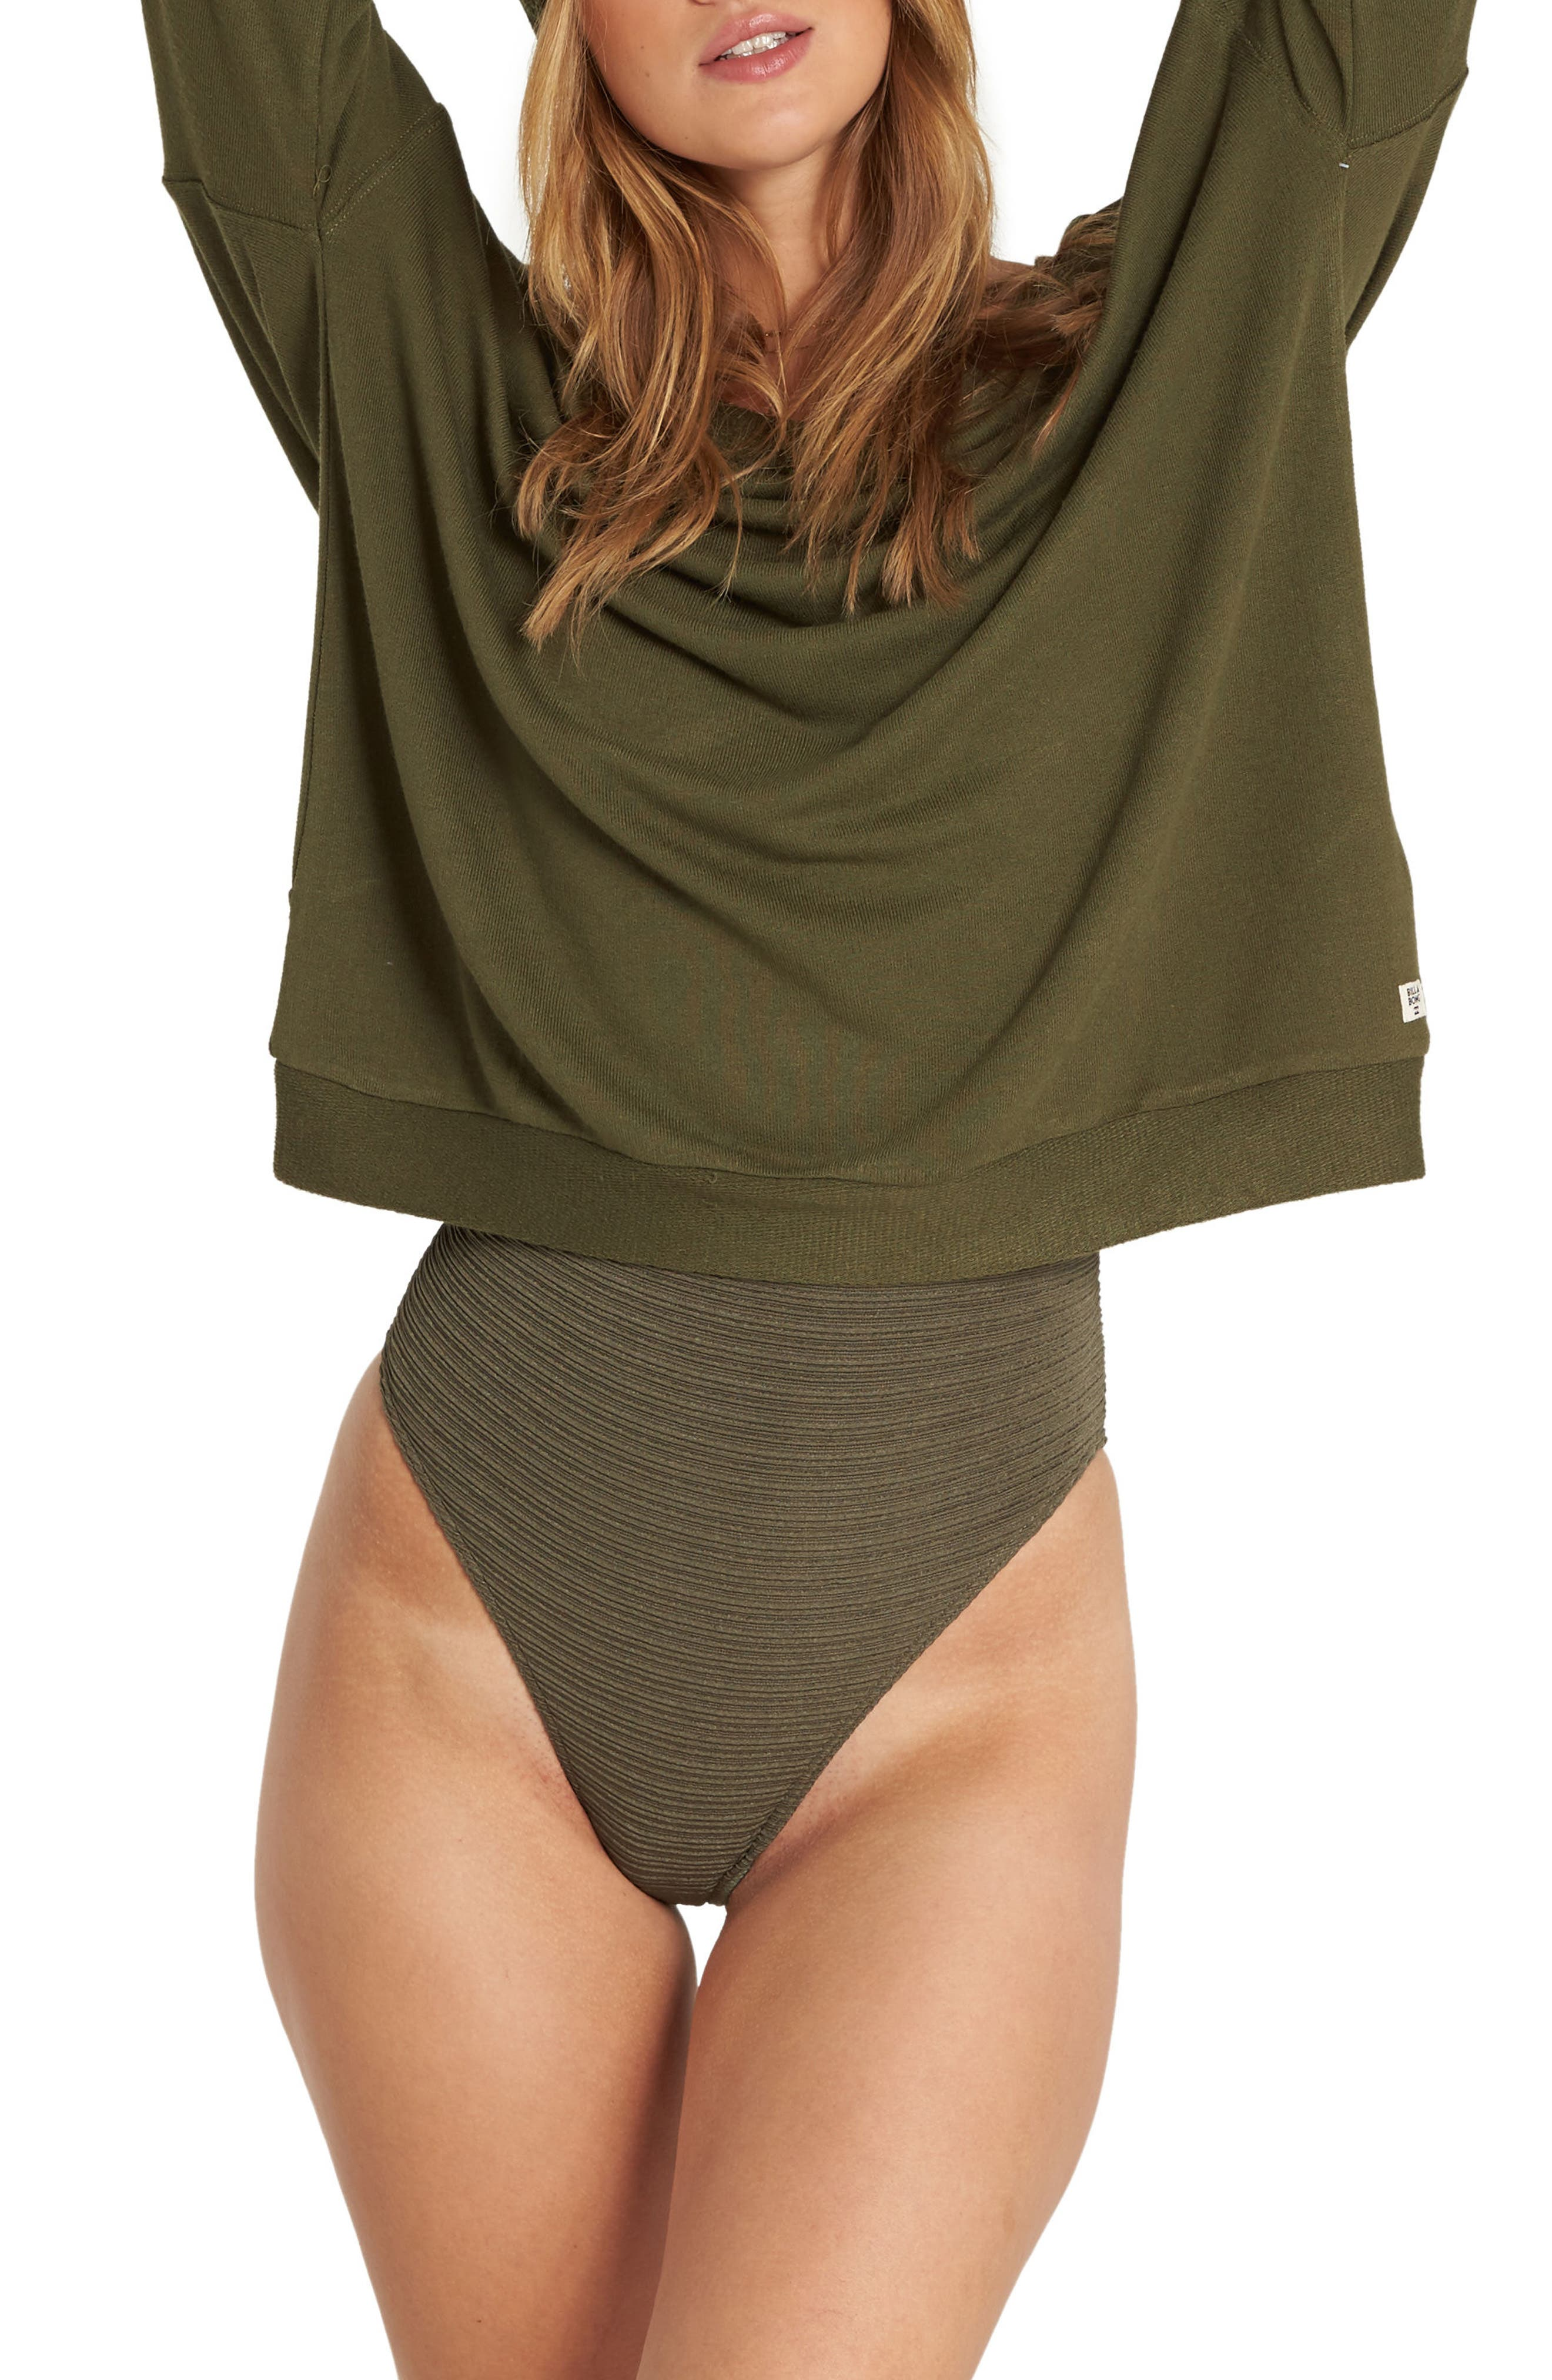 Let Go Top,                         Main,                         color, Olive